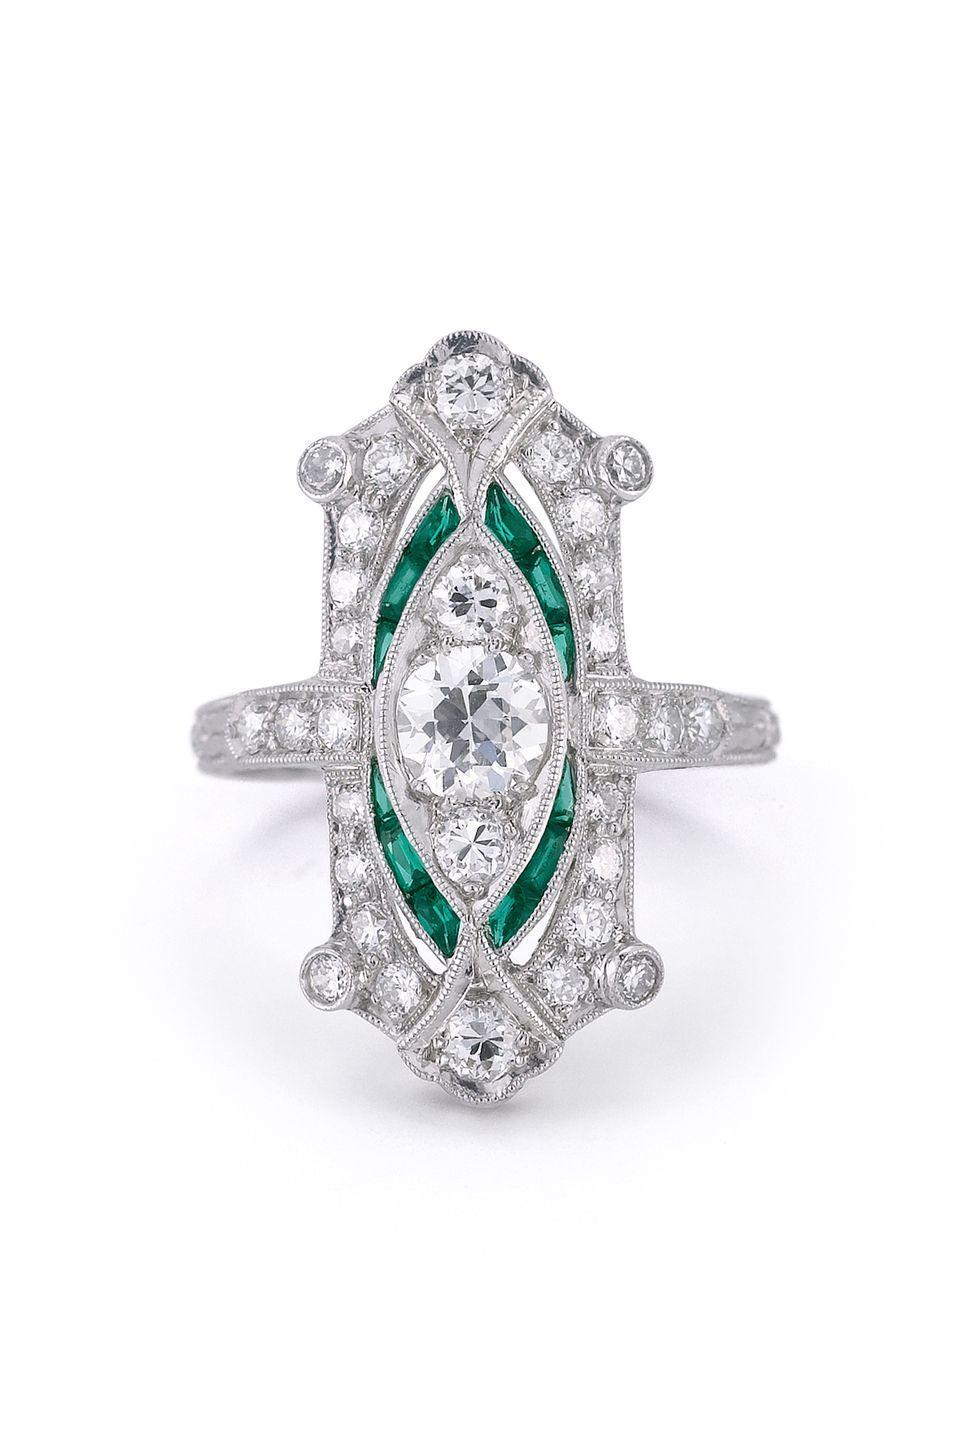 "<p><em><em><strong>McTeigue & McClelland</strong></em> Old European Cut Diamond and Natural Emerald Engagement Ring Circa 1905, price upon request, <a href=""http://www.mc2jewels.com/"" rel=""nofollow noopener"" target=""_blank"" data-ylk=""slk:mc2jewels.com"" class=""link rapid-noclick-resp"">mc2jewels.com</a></em></p><p><a class=""link rapid-noclick-resp"" href=""http://www.mc2jewels.com/"" rel=""nofollow noopener"" target=""_blank"" data-ylk=""slk:SHOP"">SHOP</a></p>"